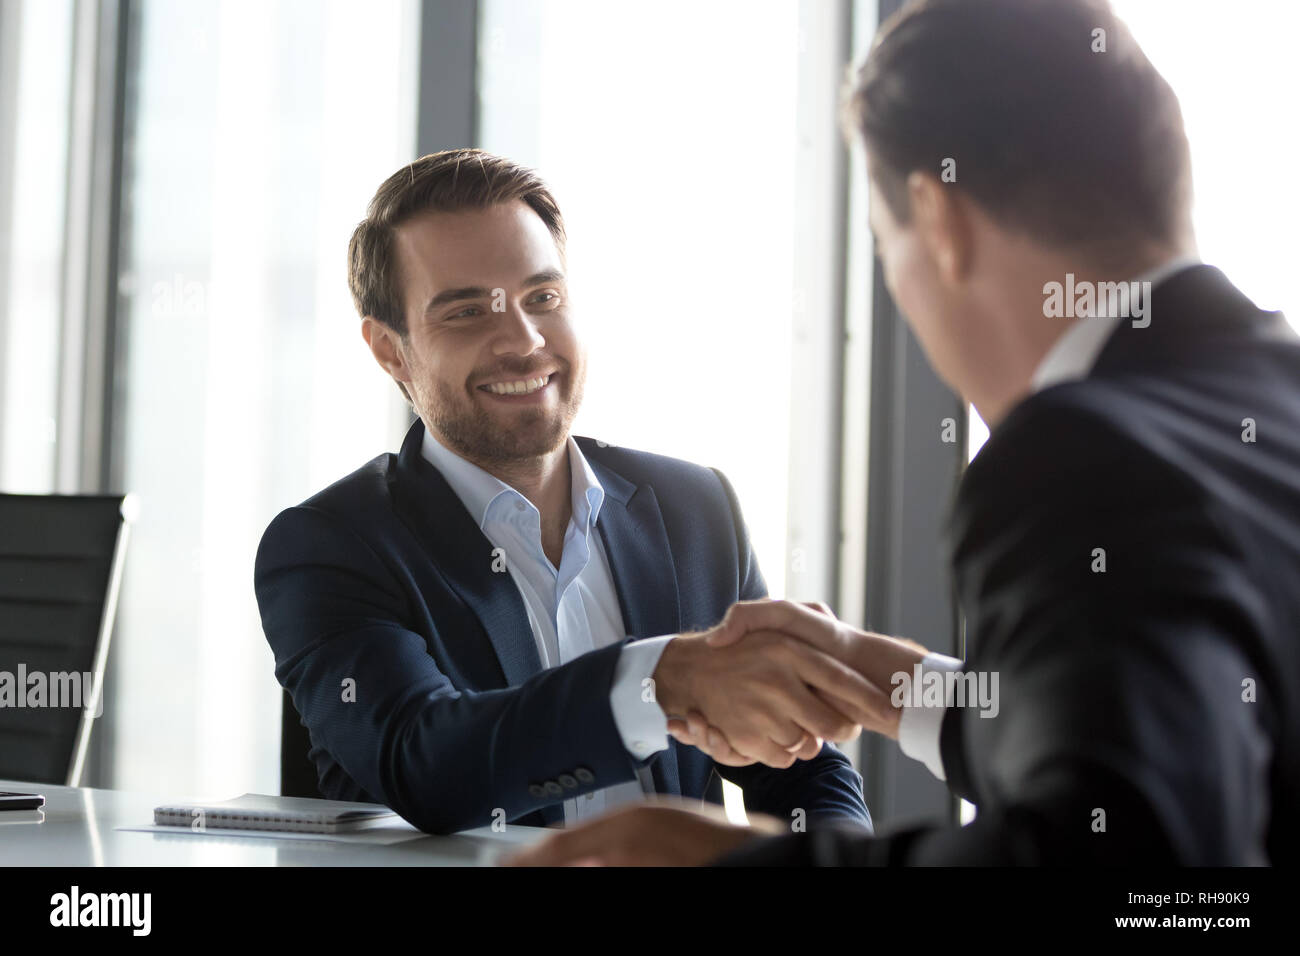 Happy successful businessmen shake hands after group negotiations, gratitude handshake - Stock Image